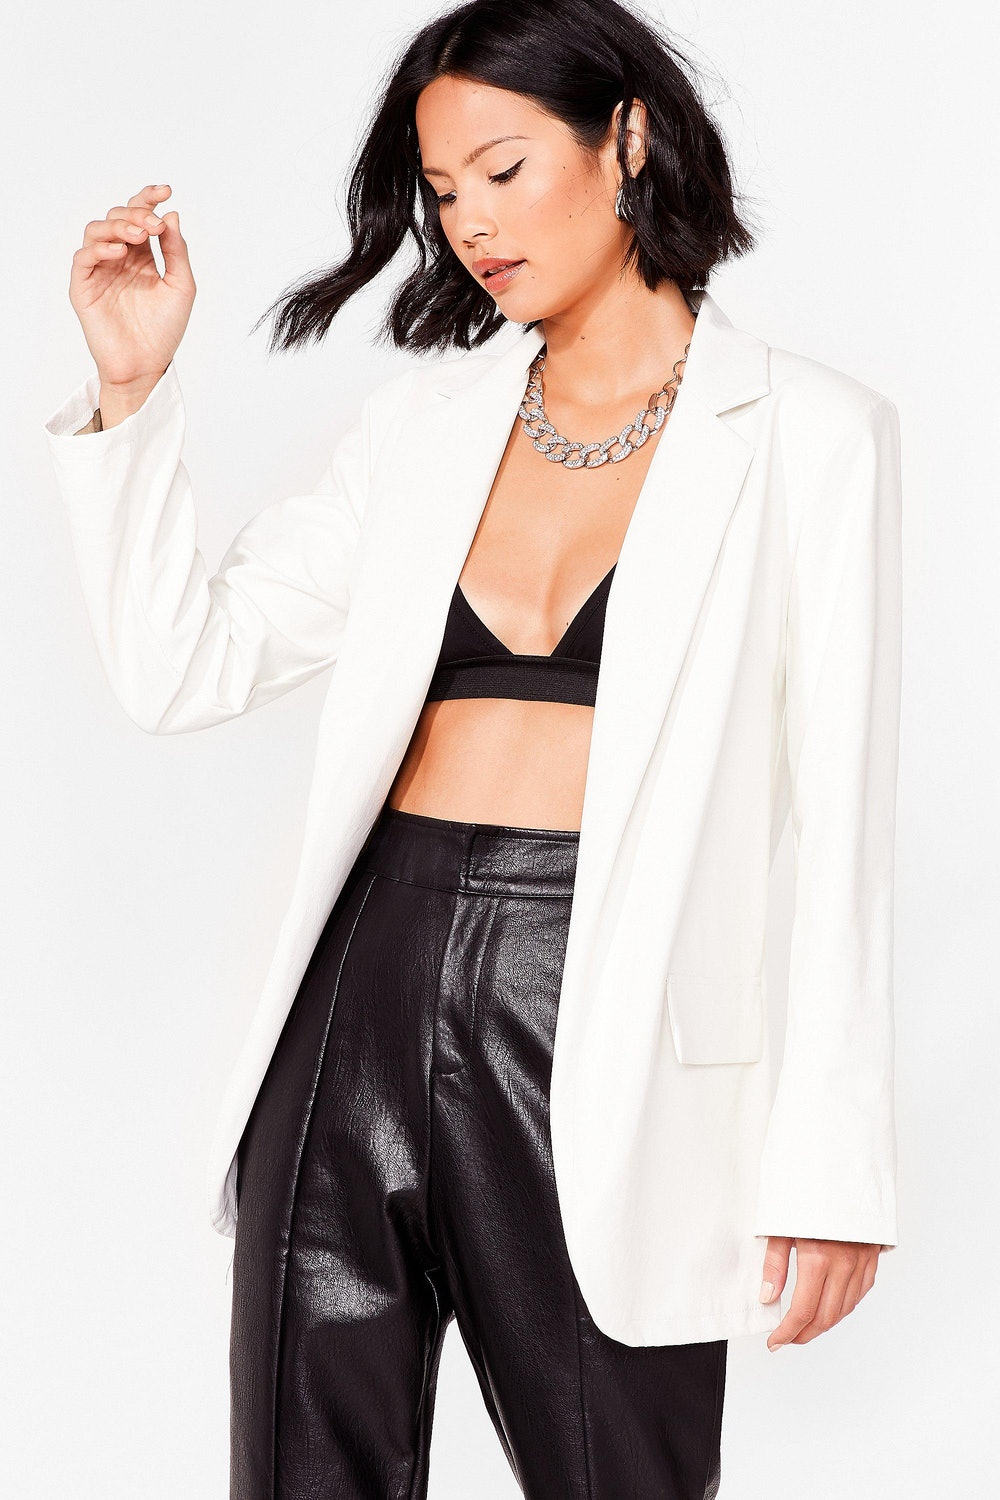 Happily Faux Leather After Relaxed Blazer